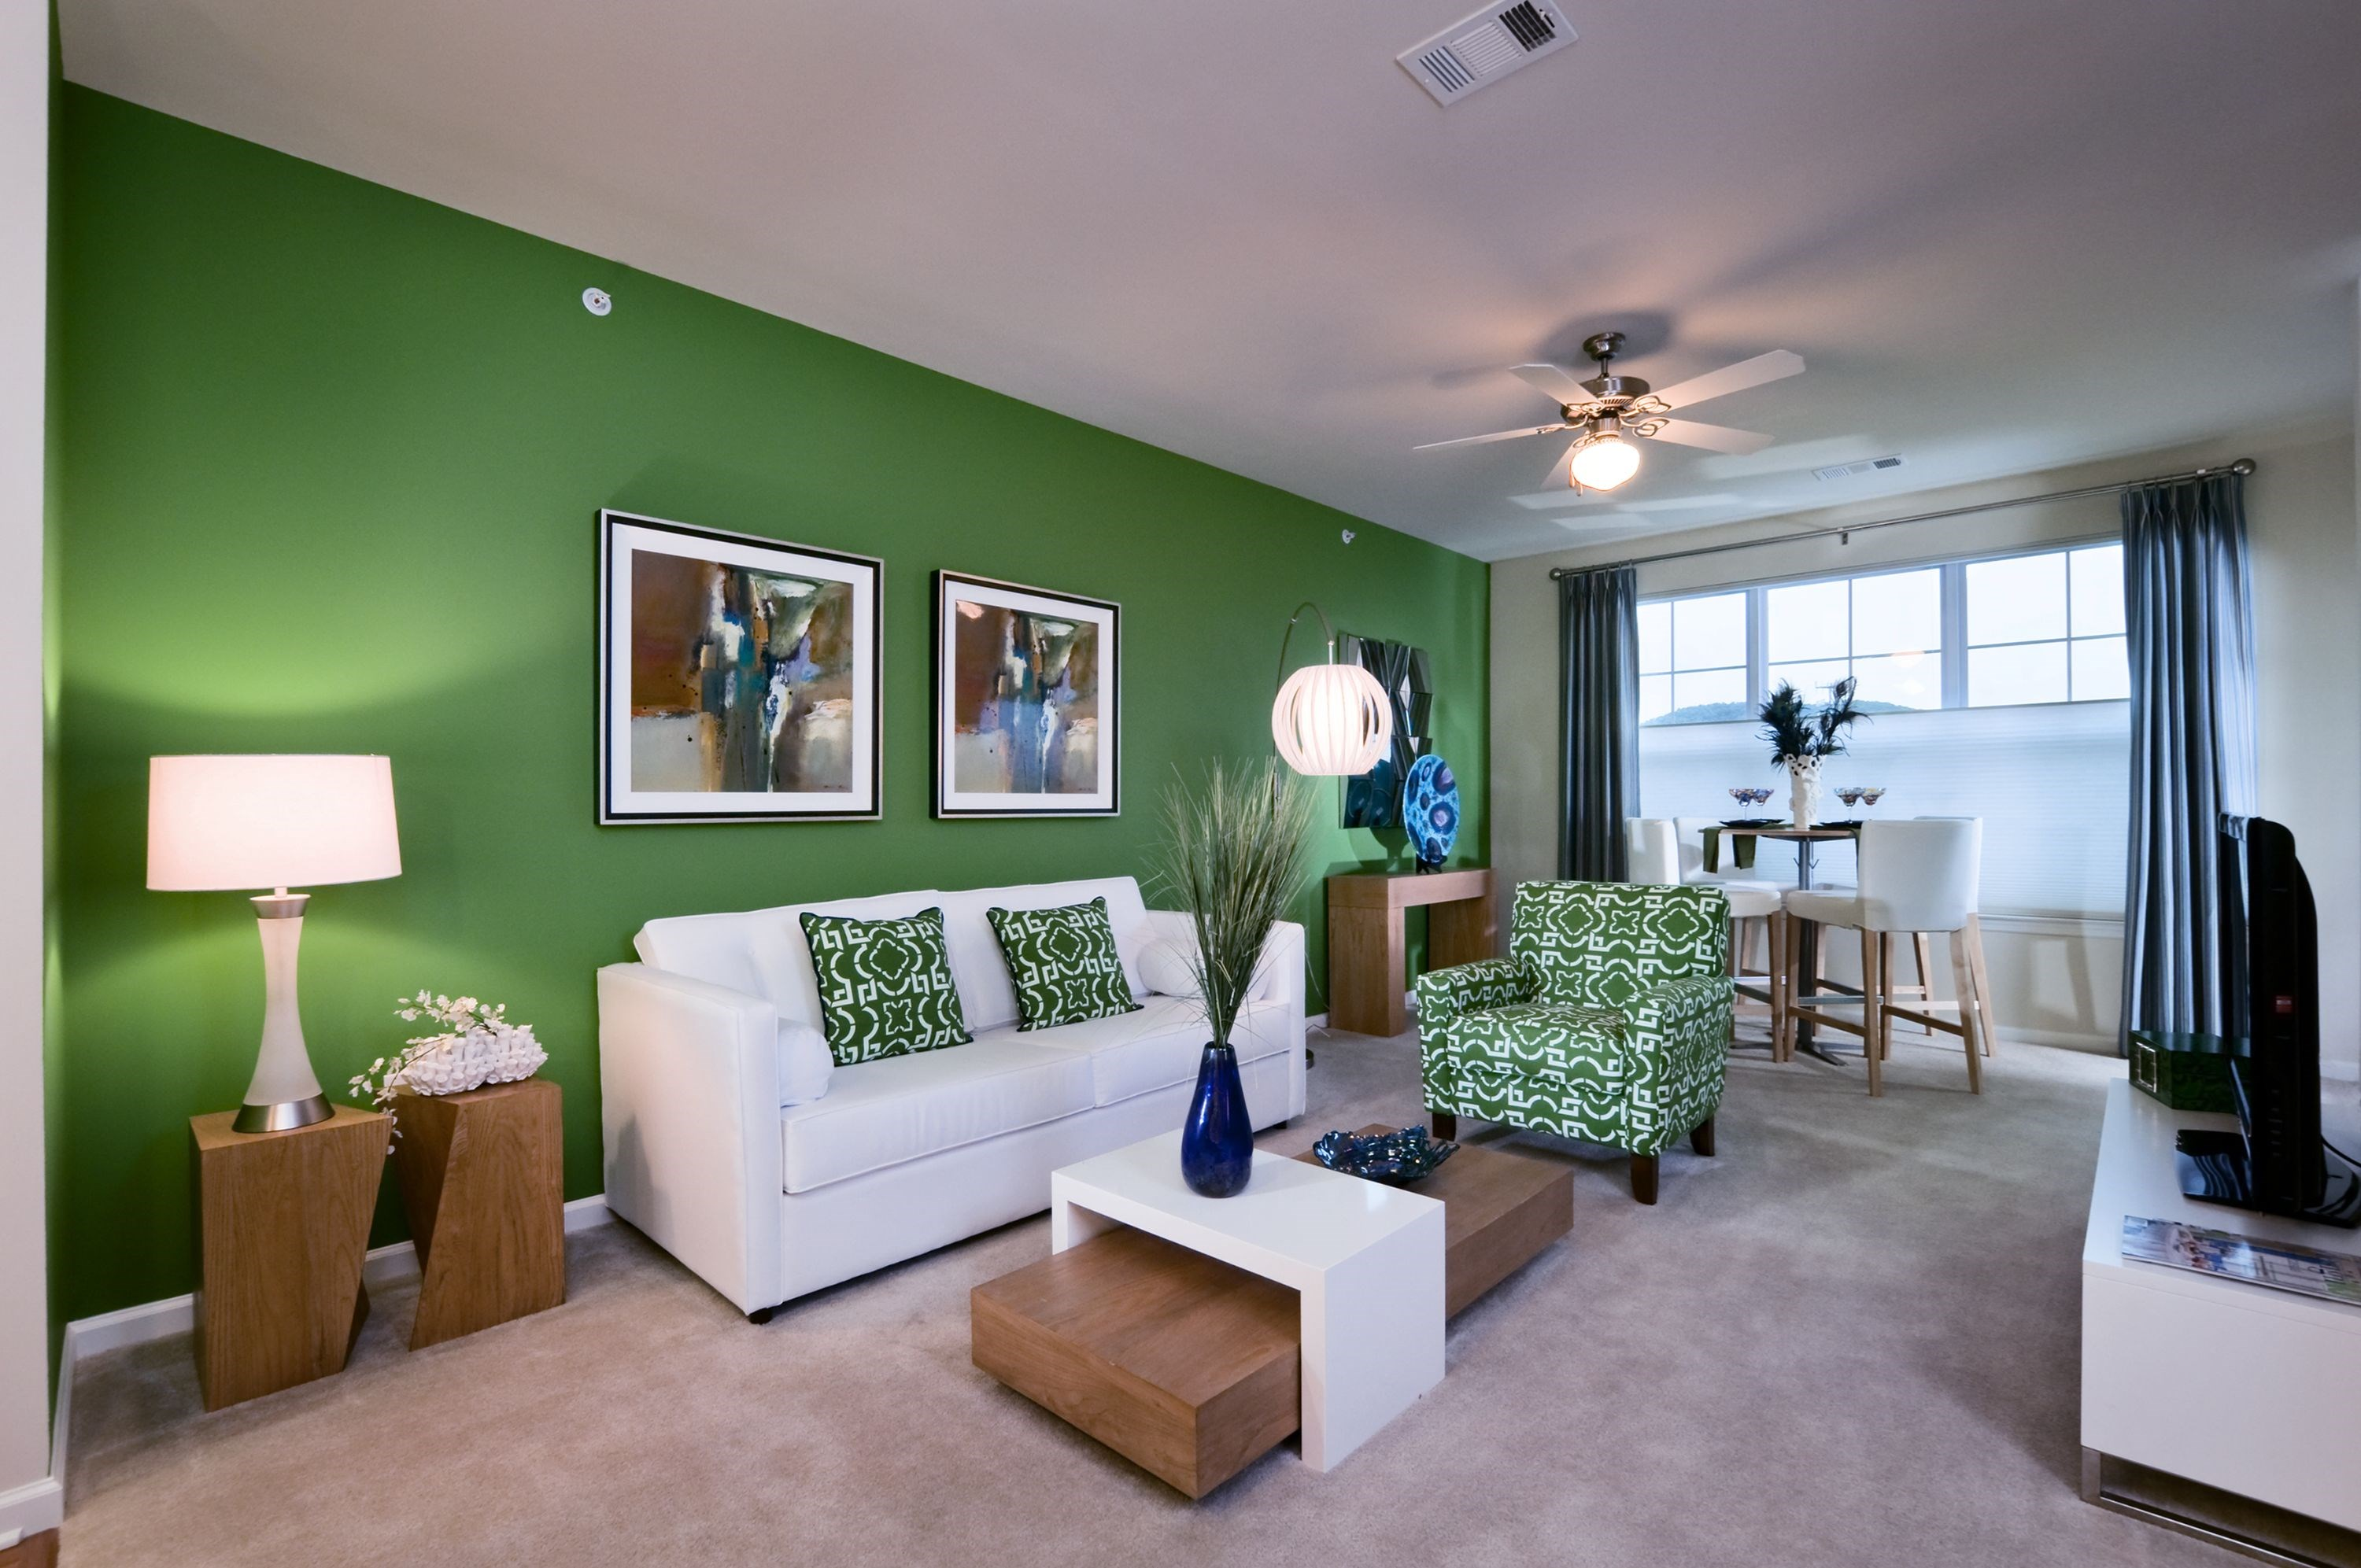 Living Room at The Reserve at Riverdale Apartments in Riverdale, NJ